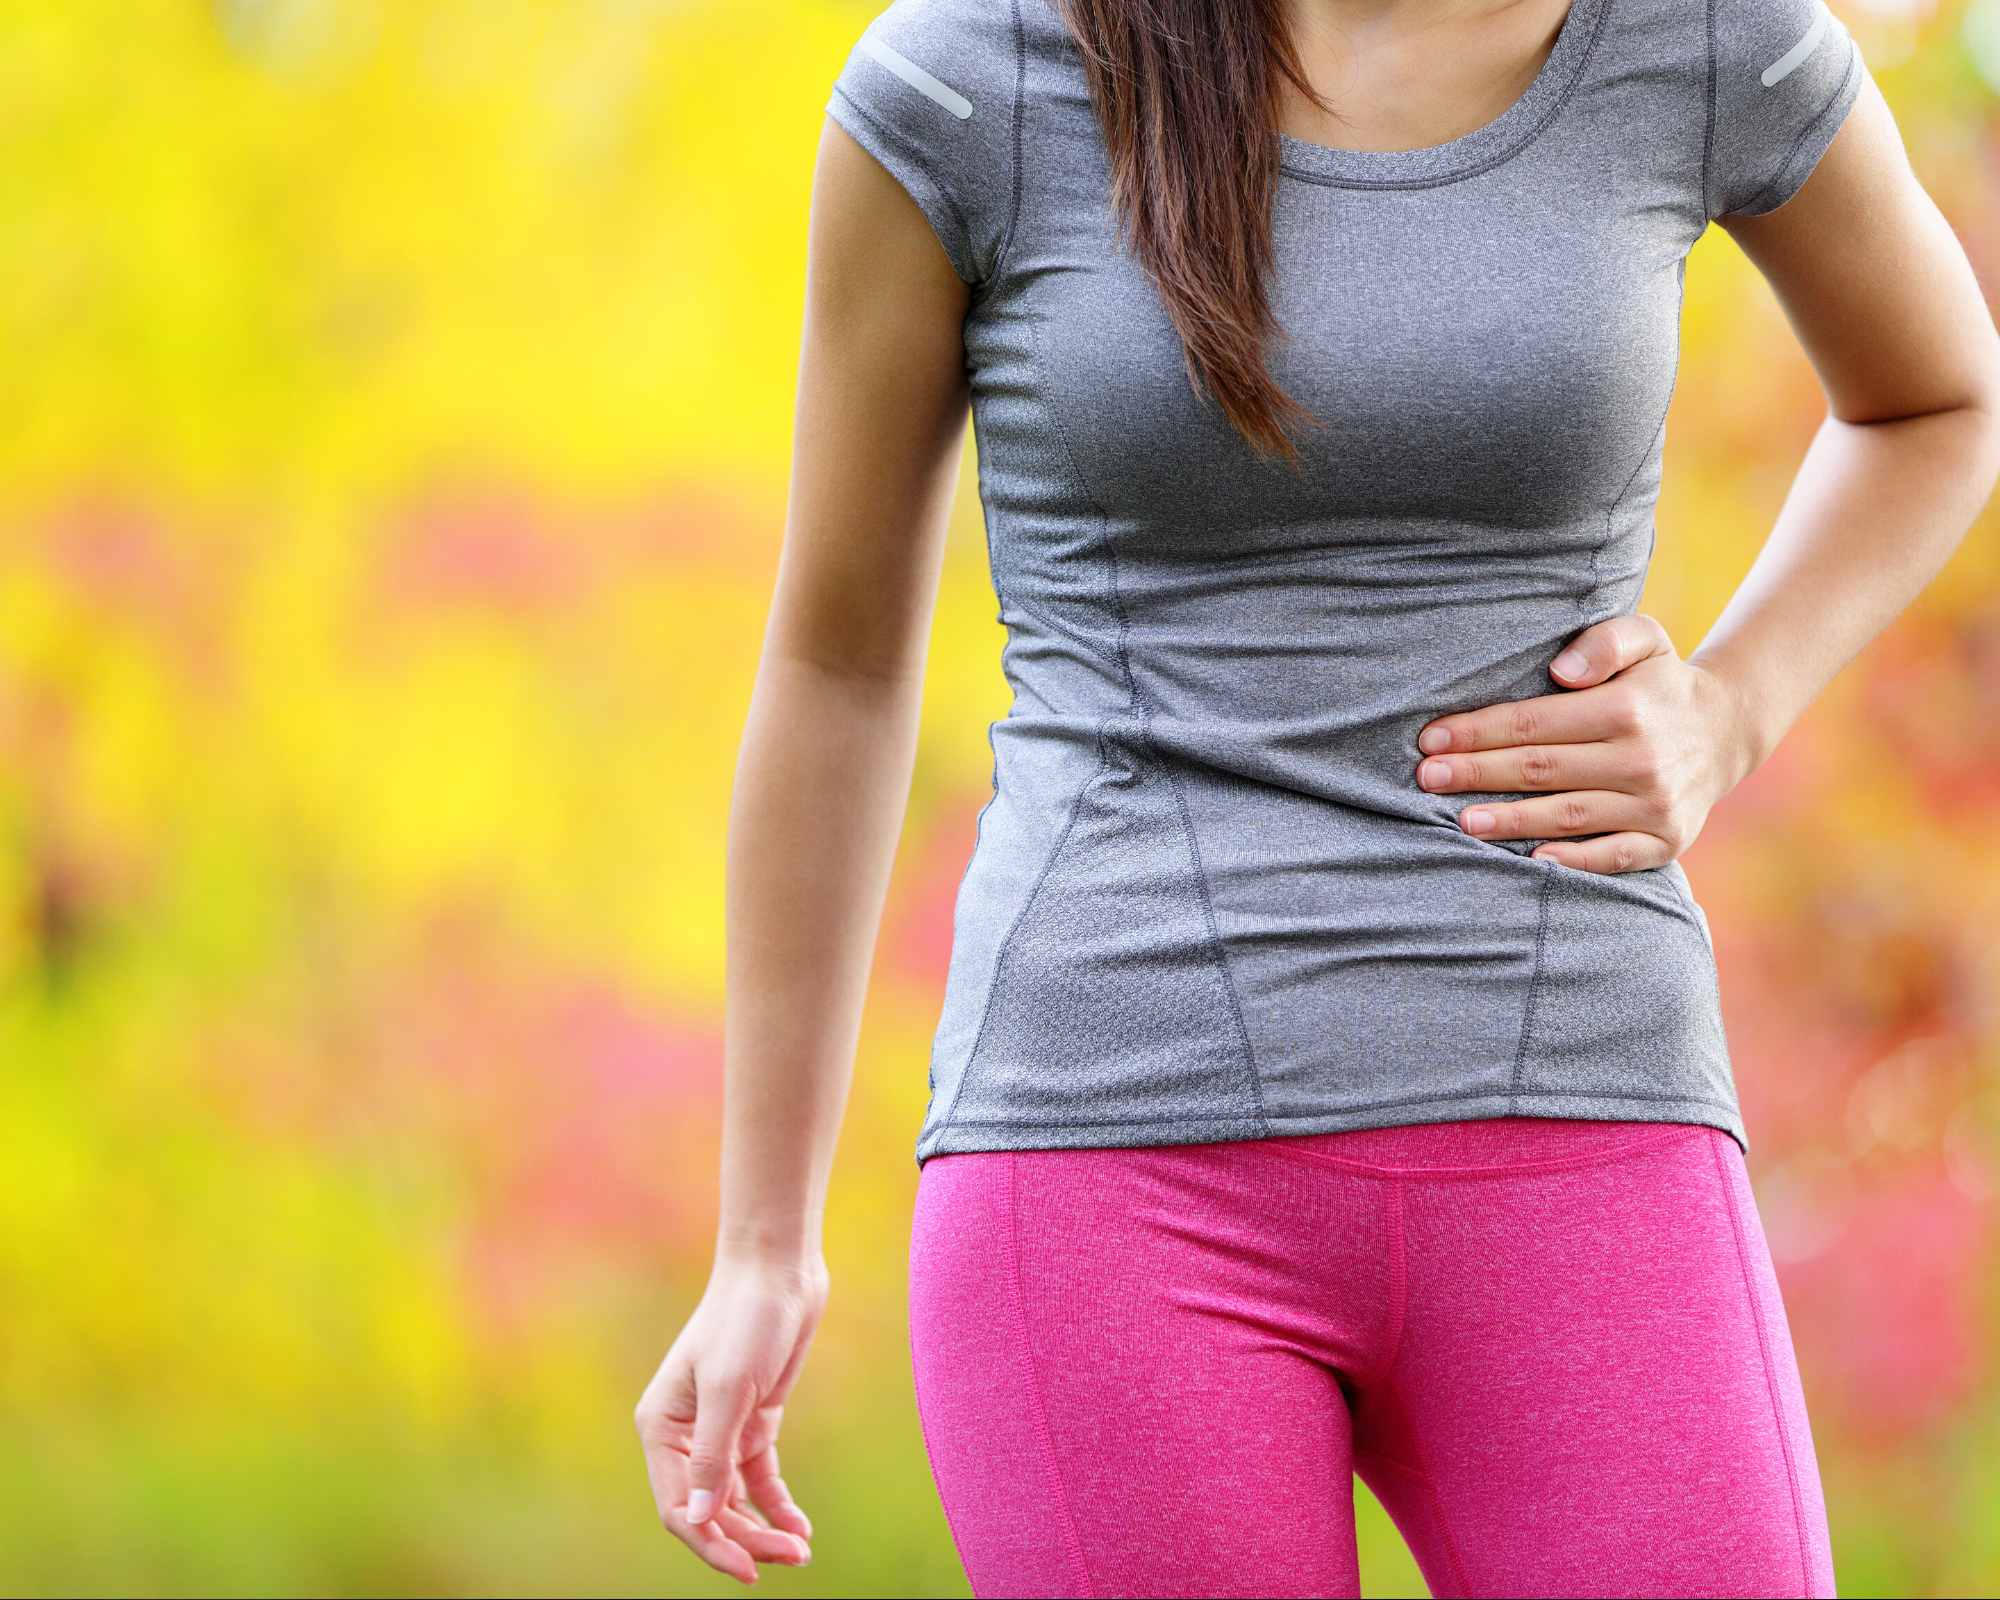 Runner clenching gut in discomfort as they experience runner's gut.